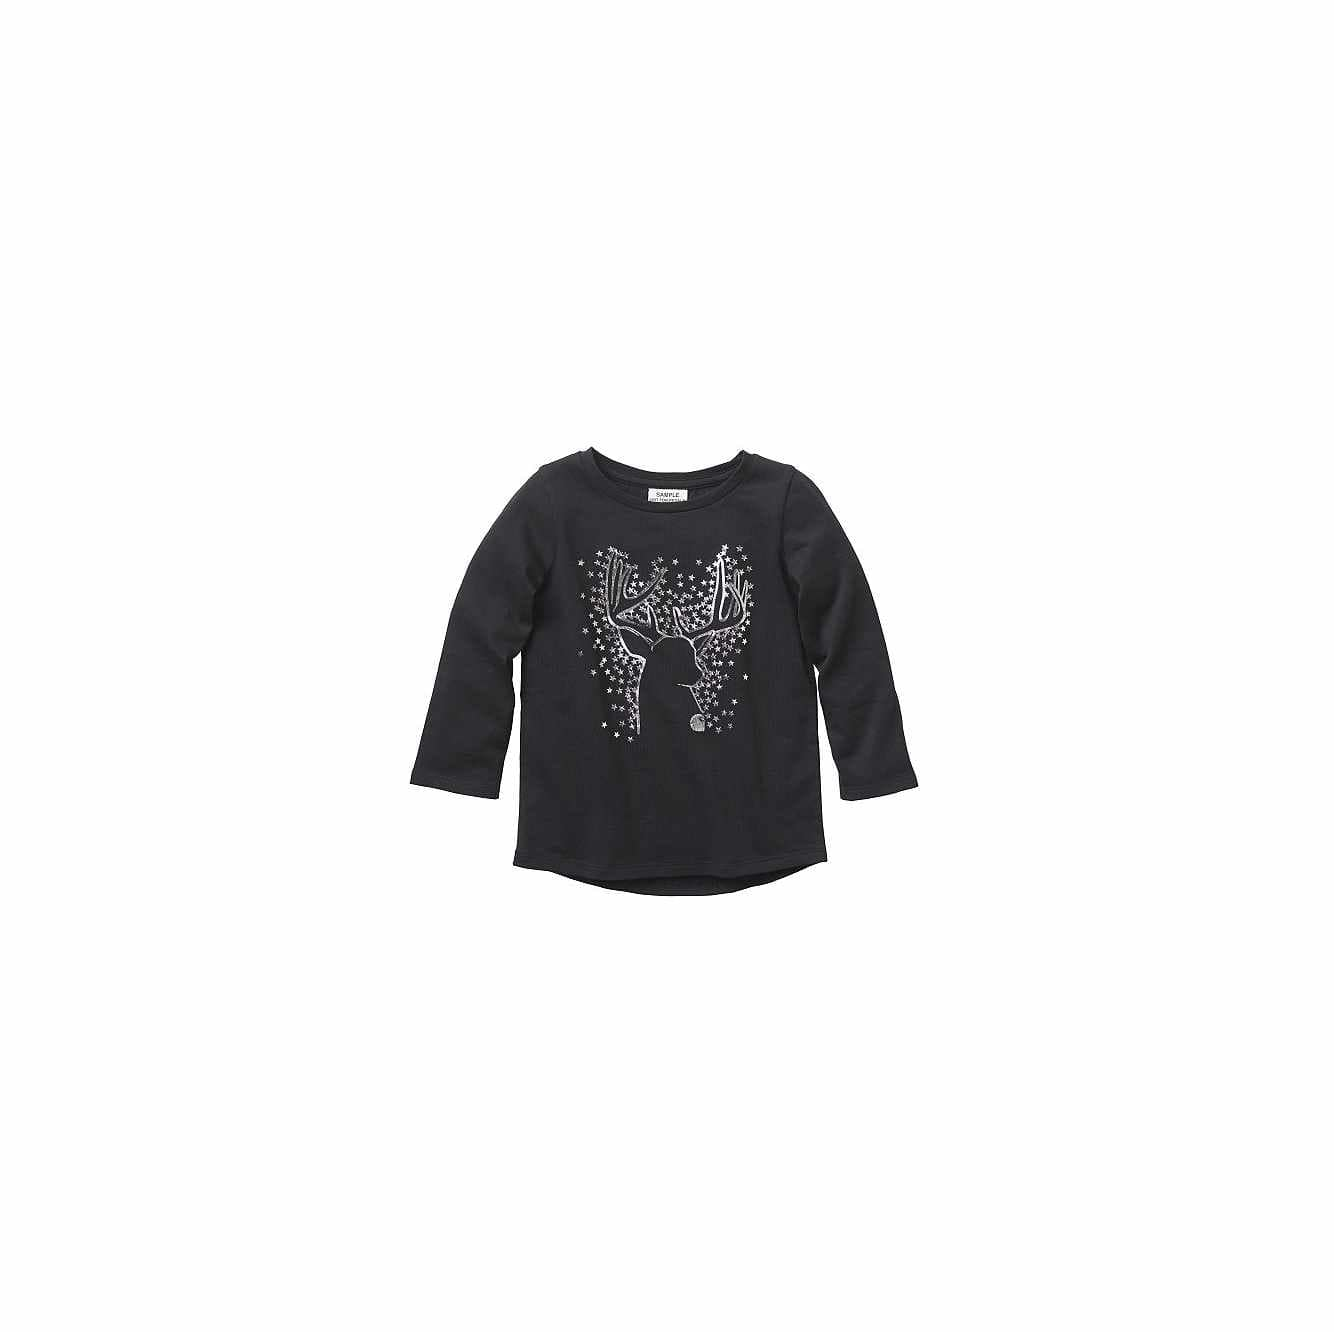 Picture of Deer T-shirt in Black Heather